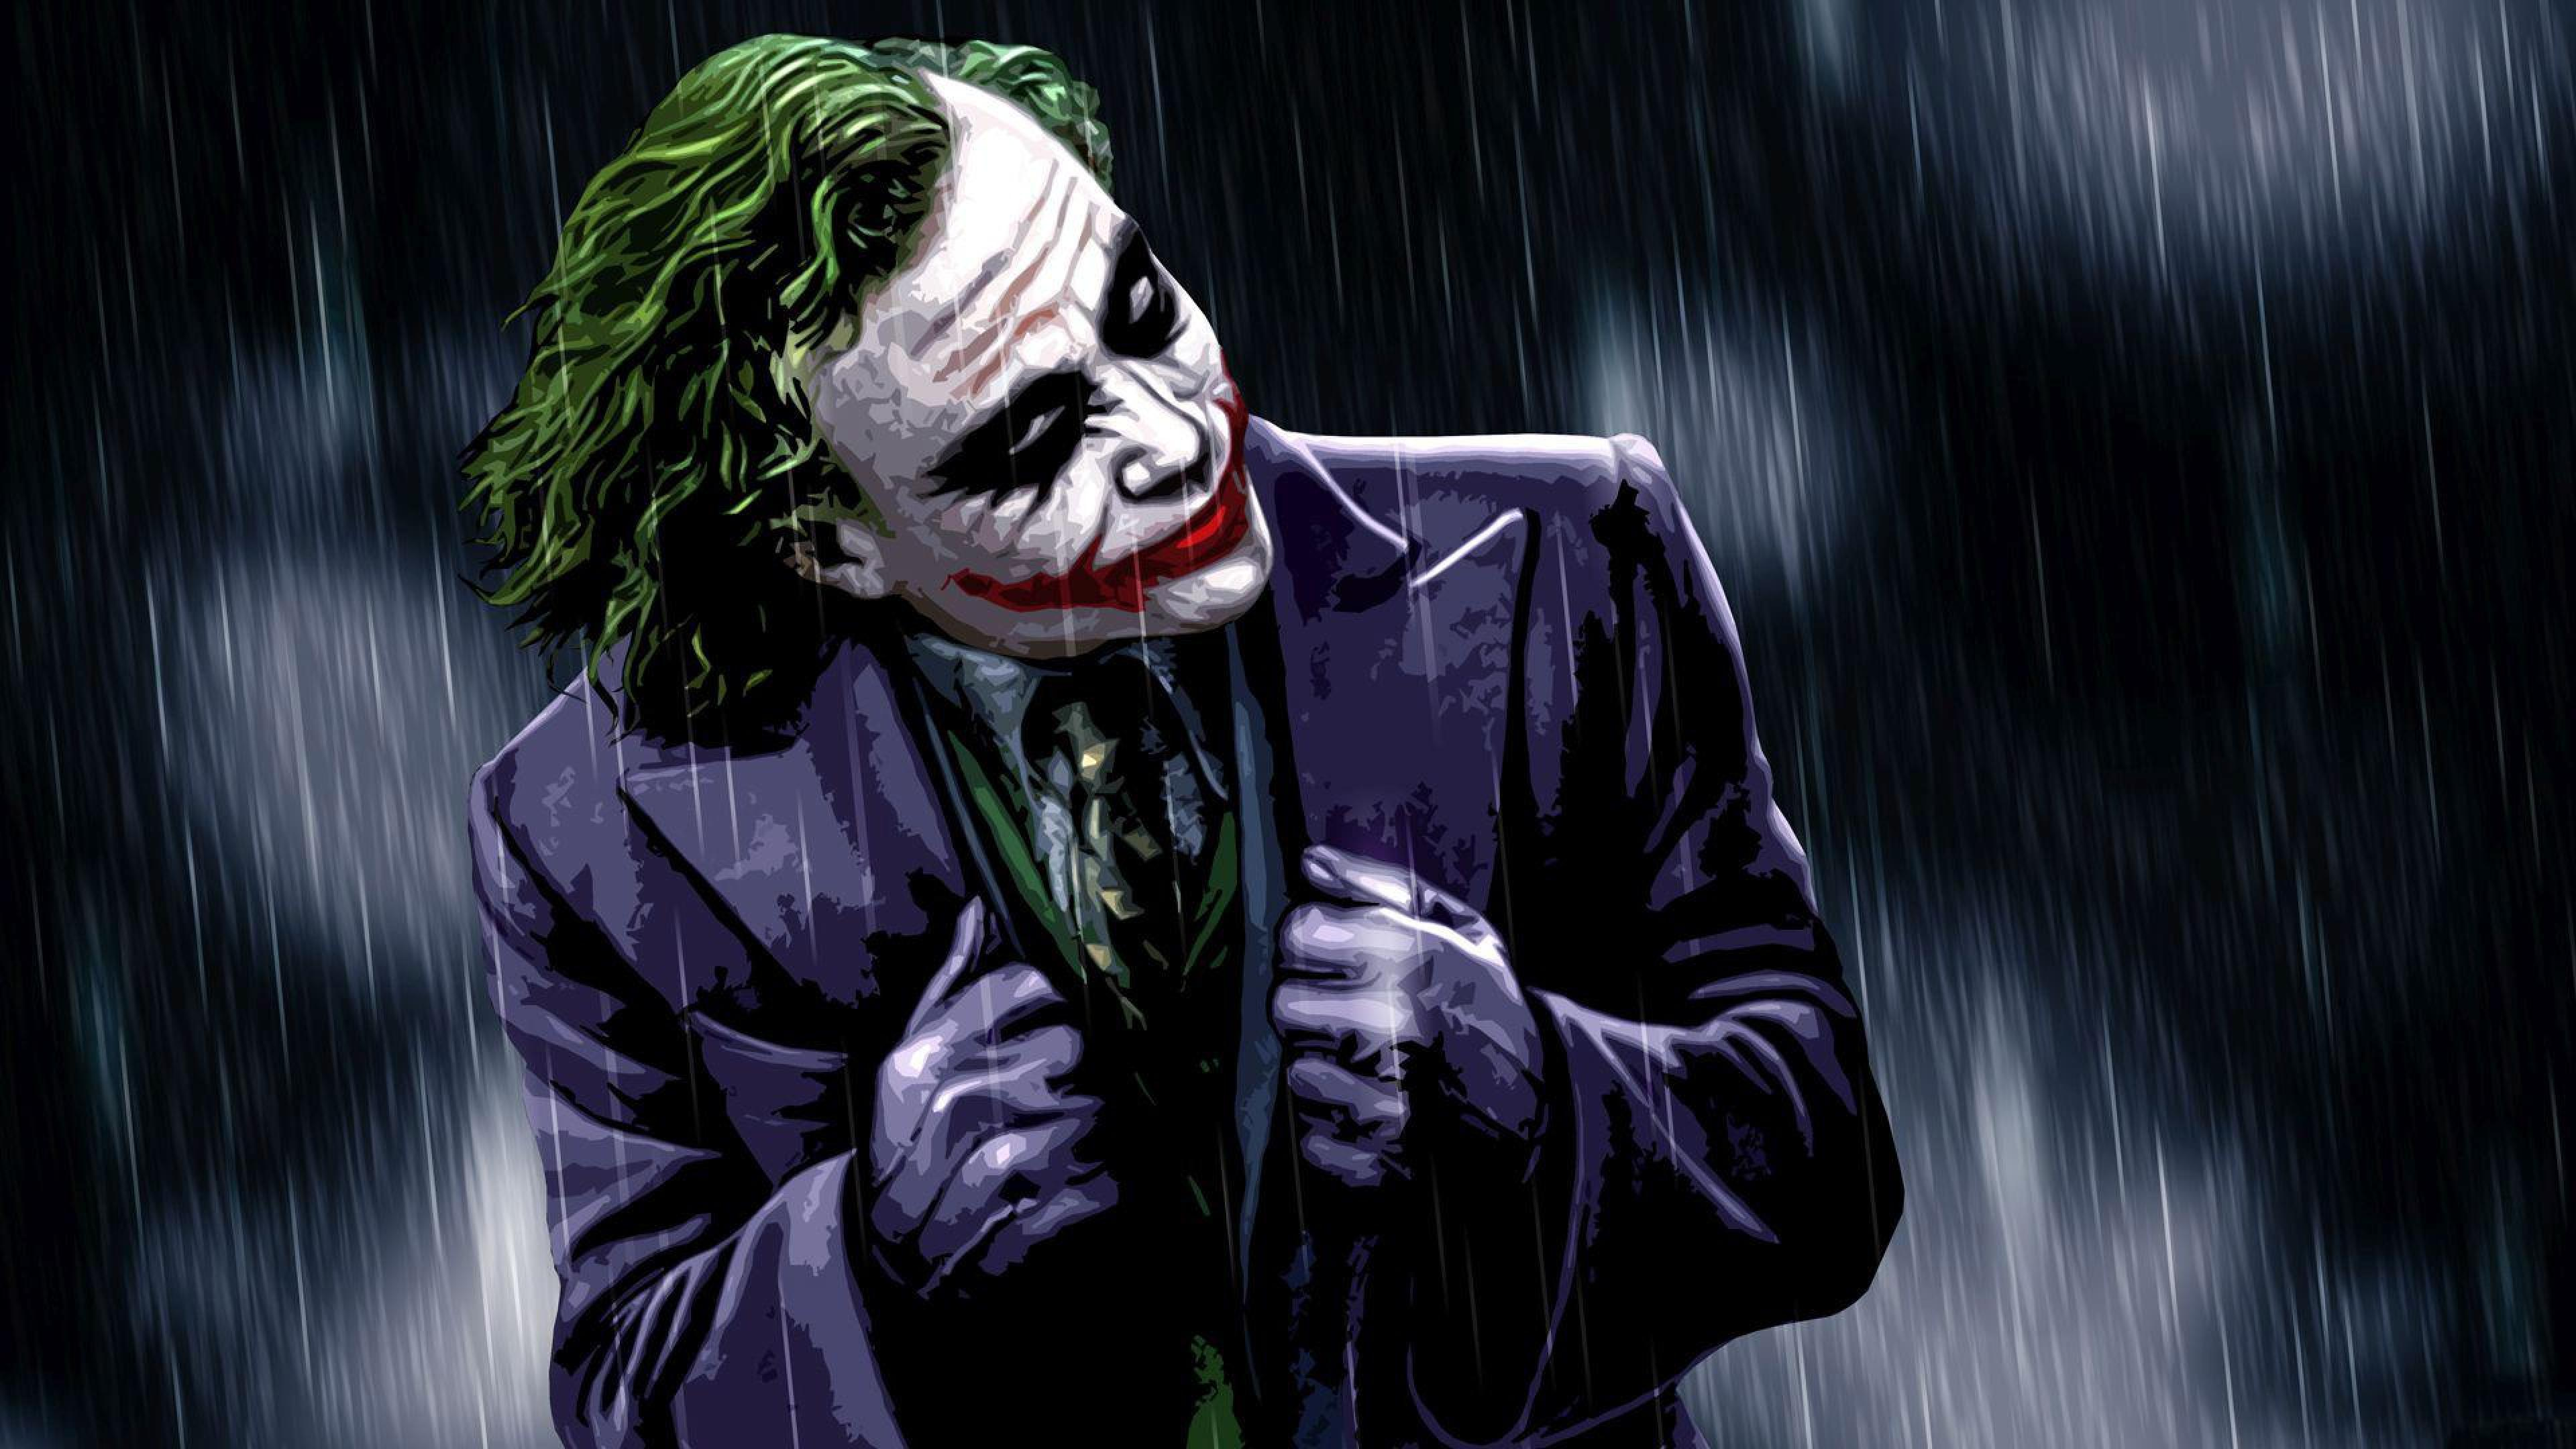 Imagenes Hd 4k Joker 3840x2160 Wallpaper Teahub Io